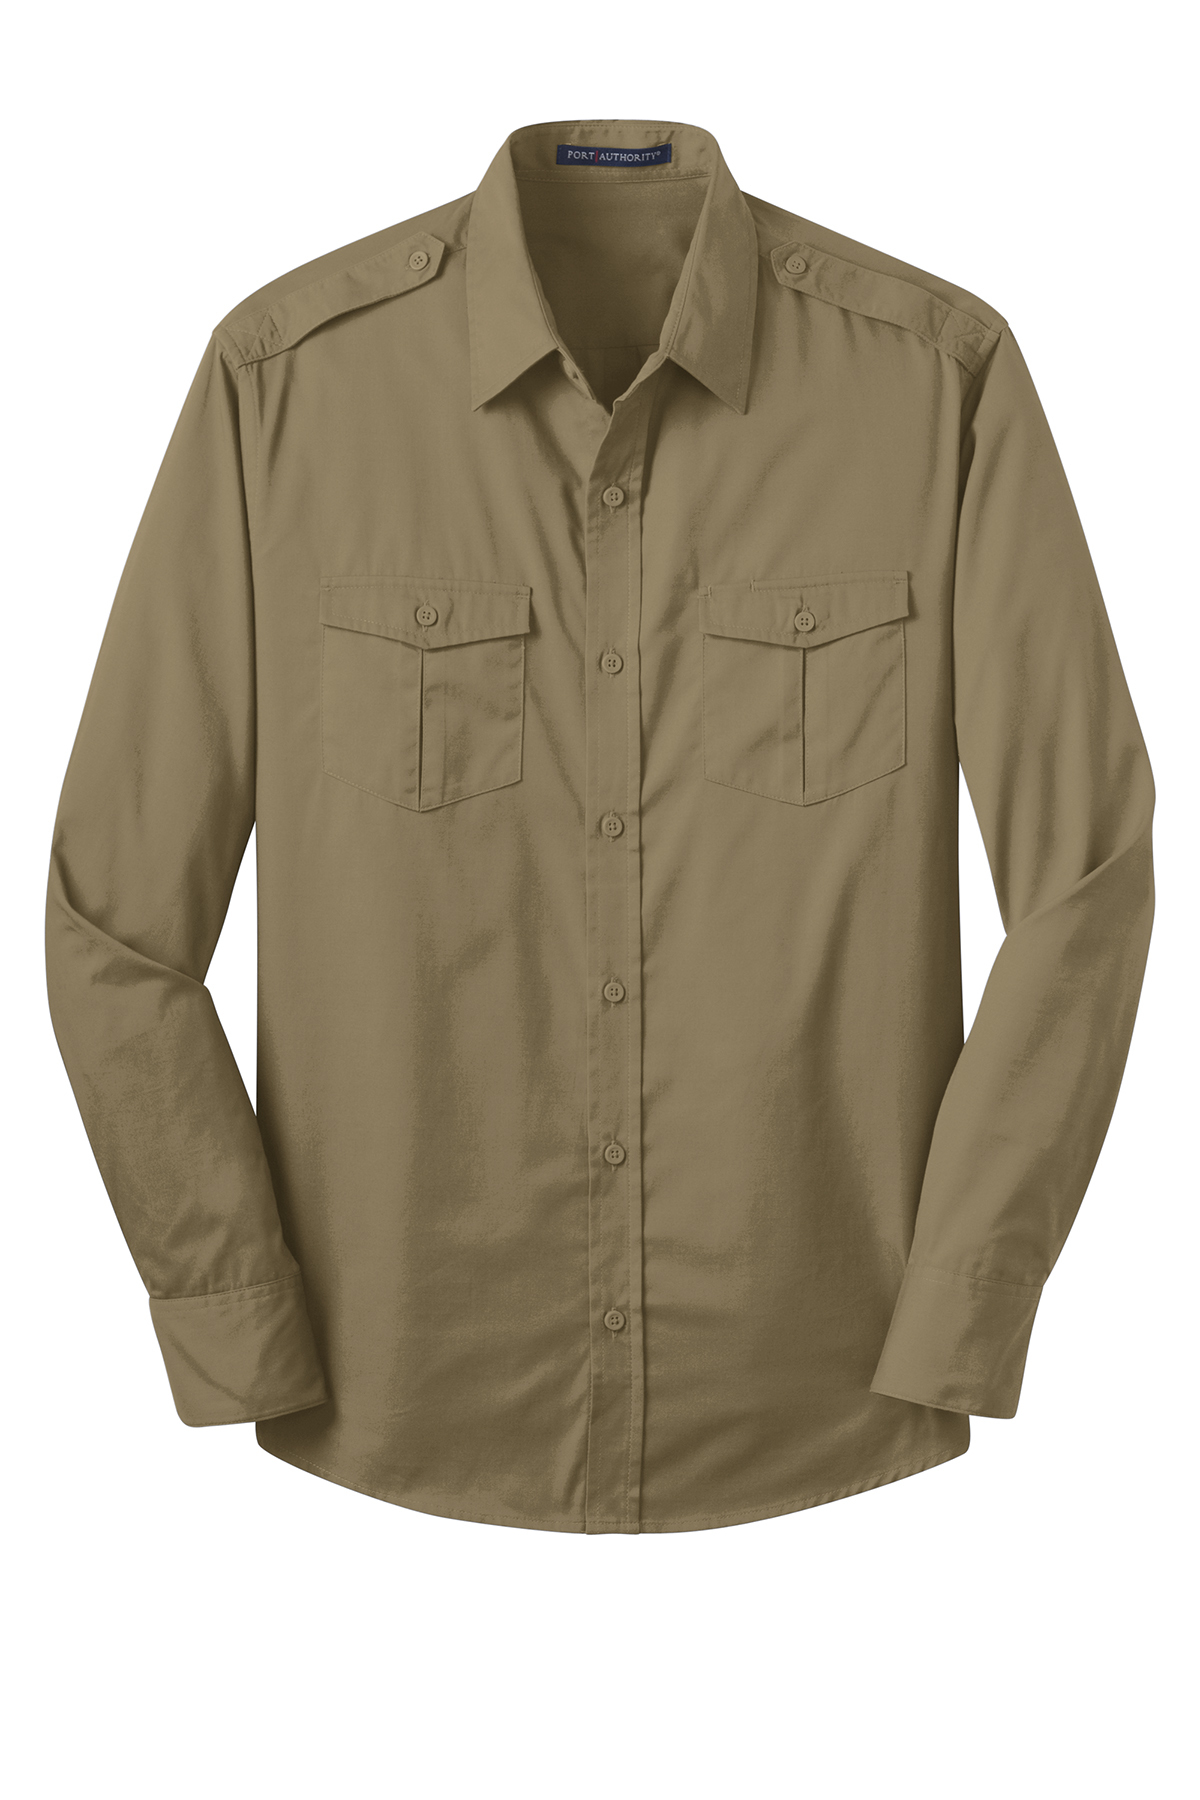 S648 Port Authority Stain-Release Short Sleeve Twill Shirt